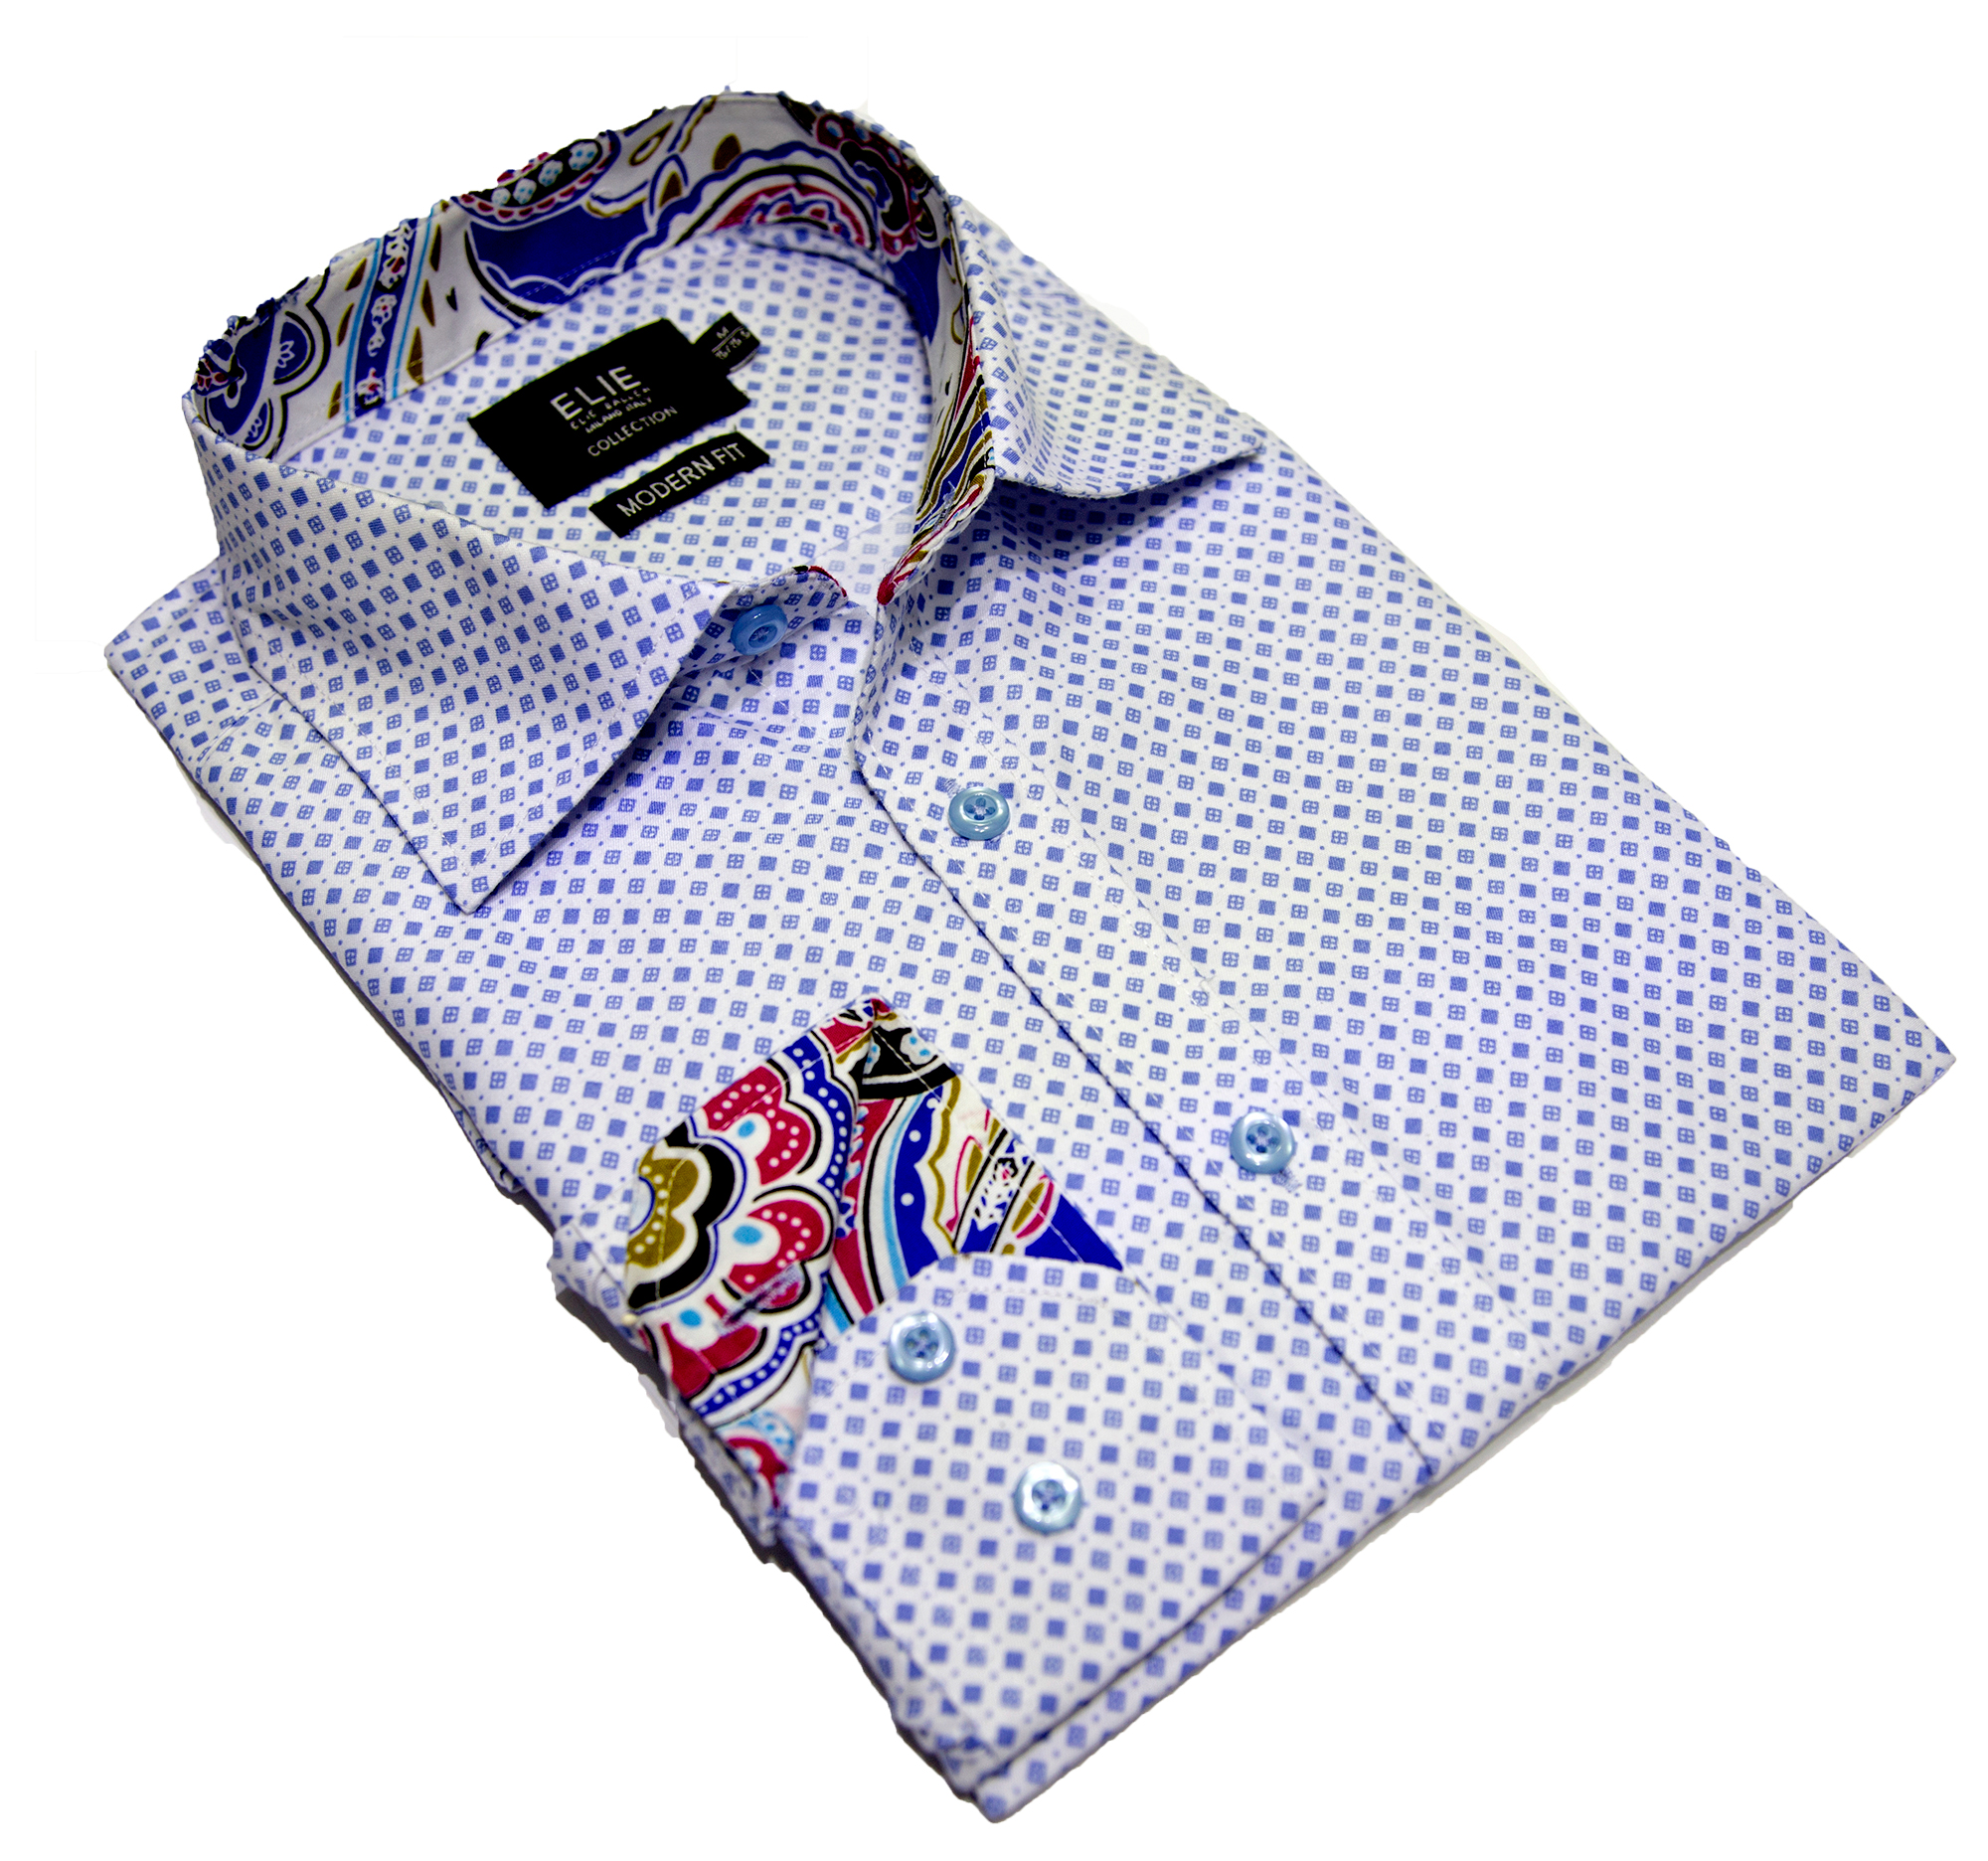 Diamond Grid Boy's Shirts/Button Down CEBSH324B